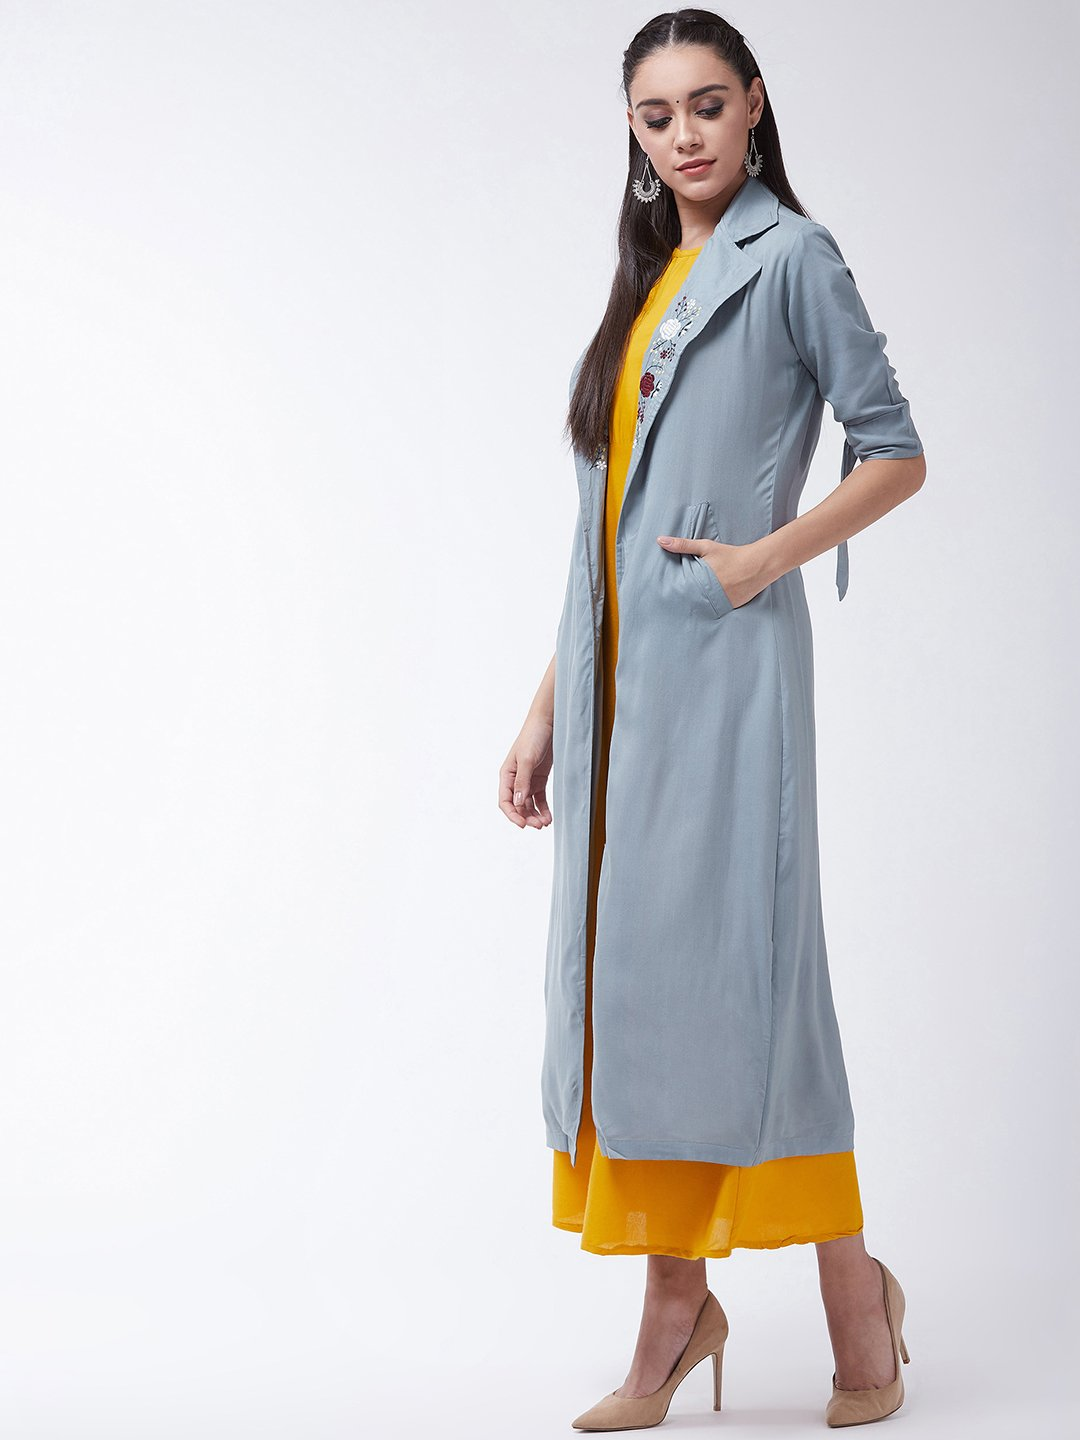 Mustard Dress With Grey Jacket